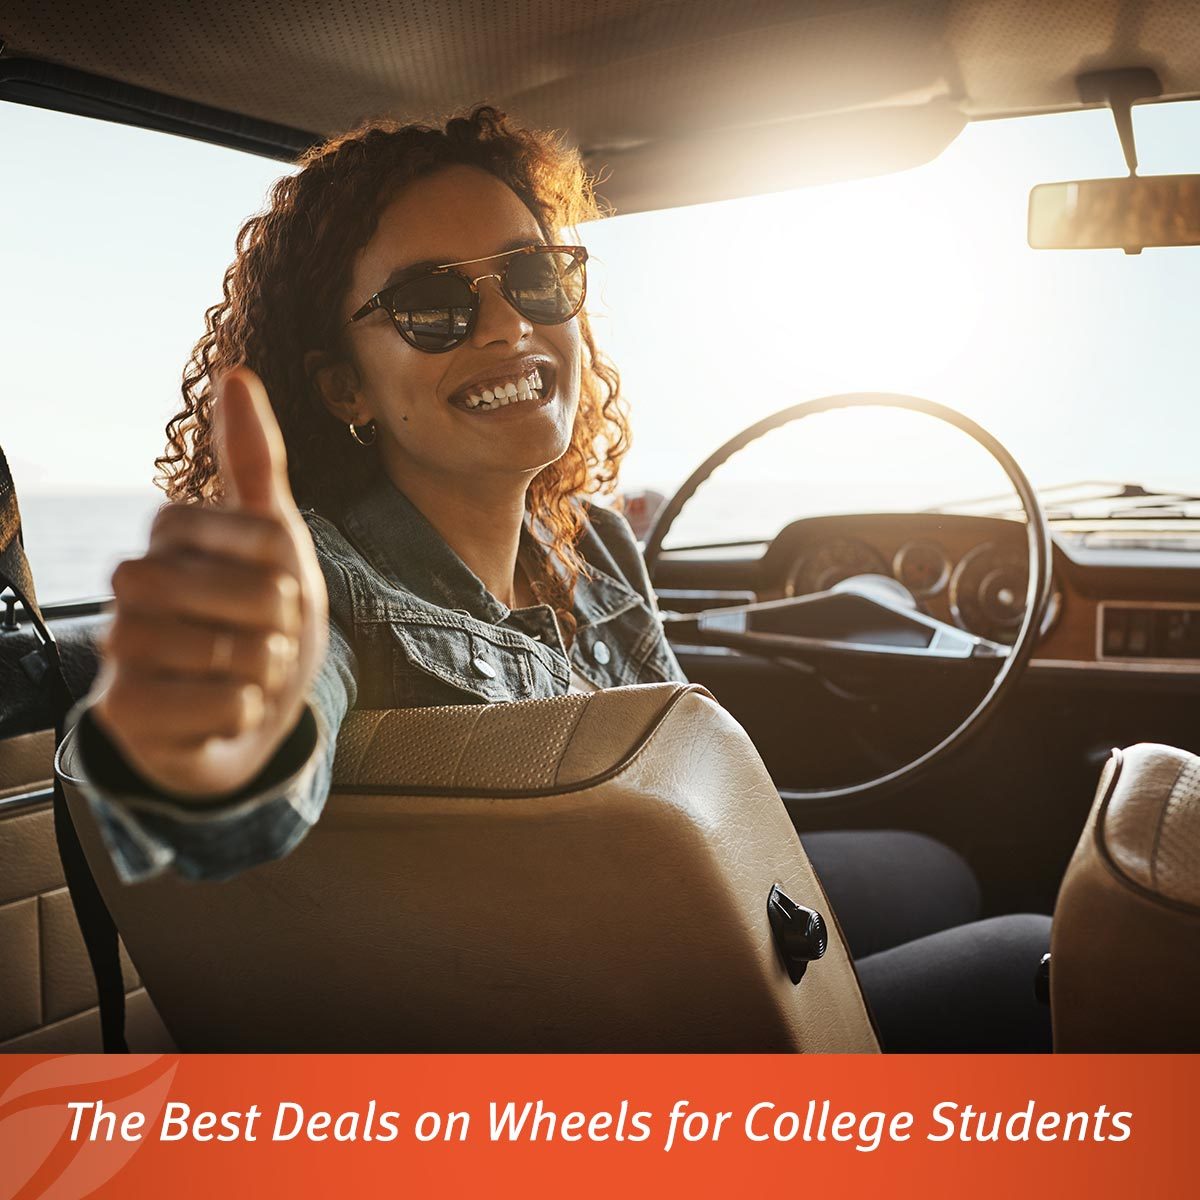 The Best Deals on Wheels for College Students